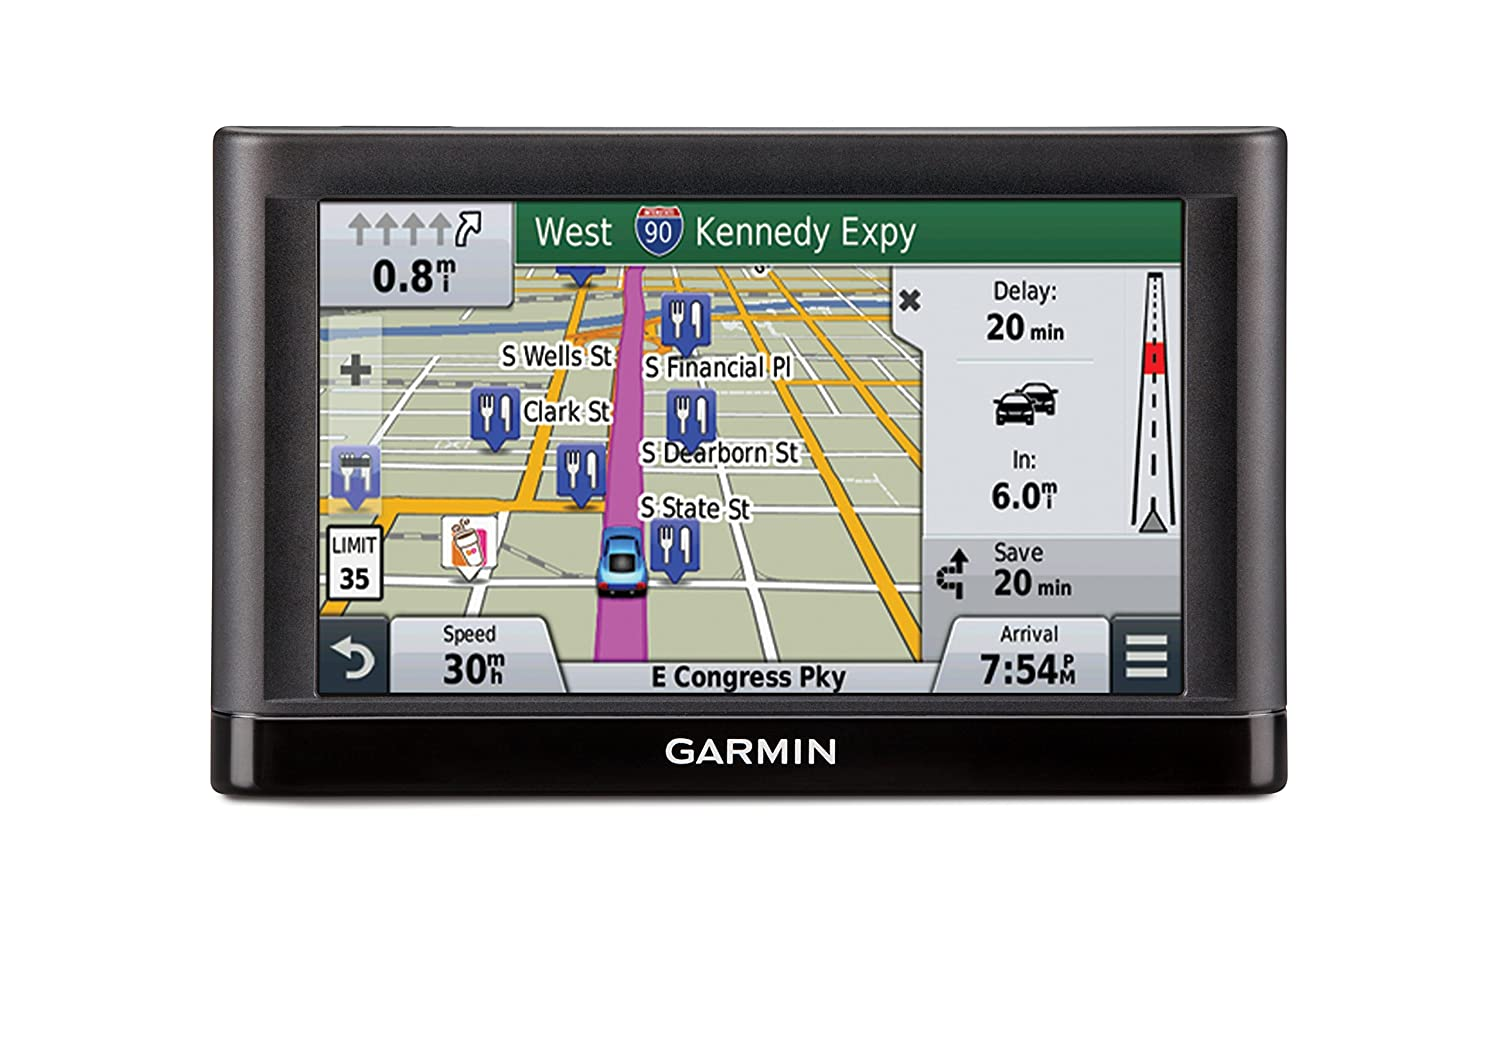 Garmin Navigators Directions Preloaded Displays Image 1